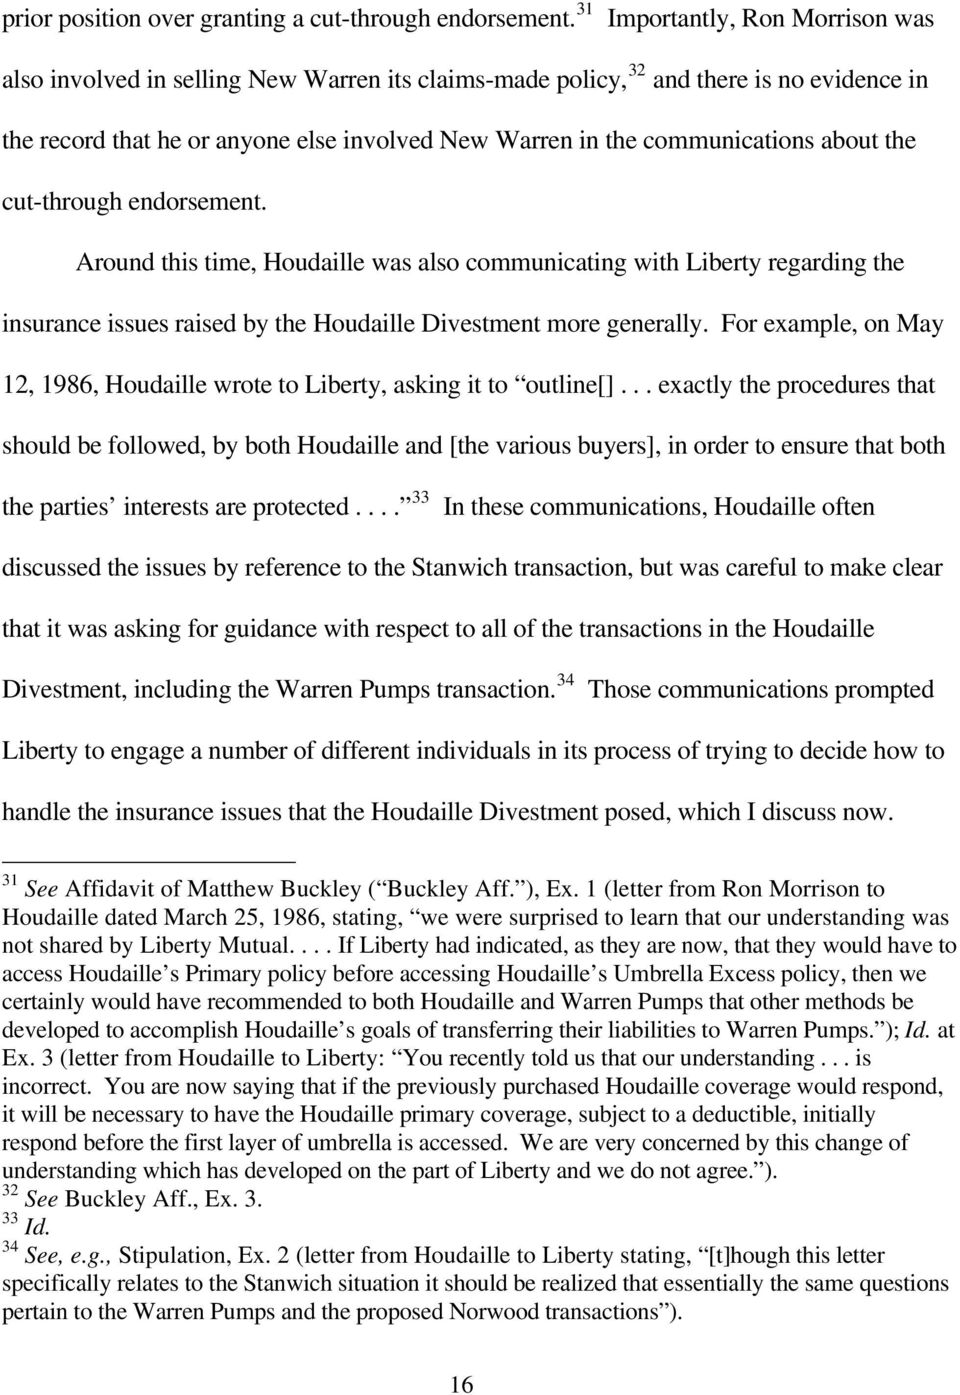 about the cut-through endorsement. Around this time, Houdaille was also communicating with Liberty regarding the insurance issues raised by the Houdaille Divestment more generally.